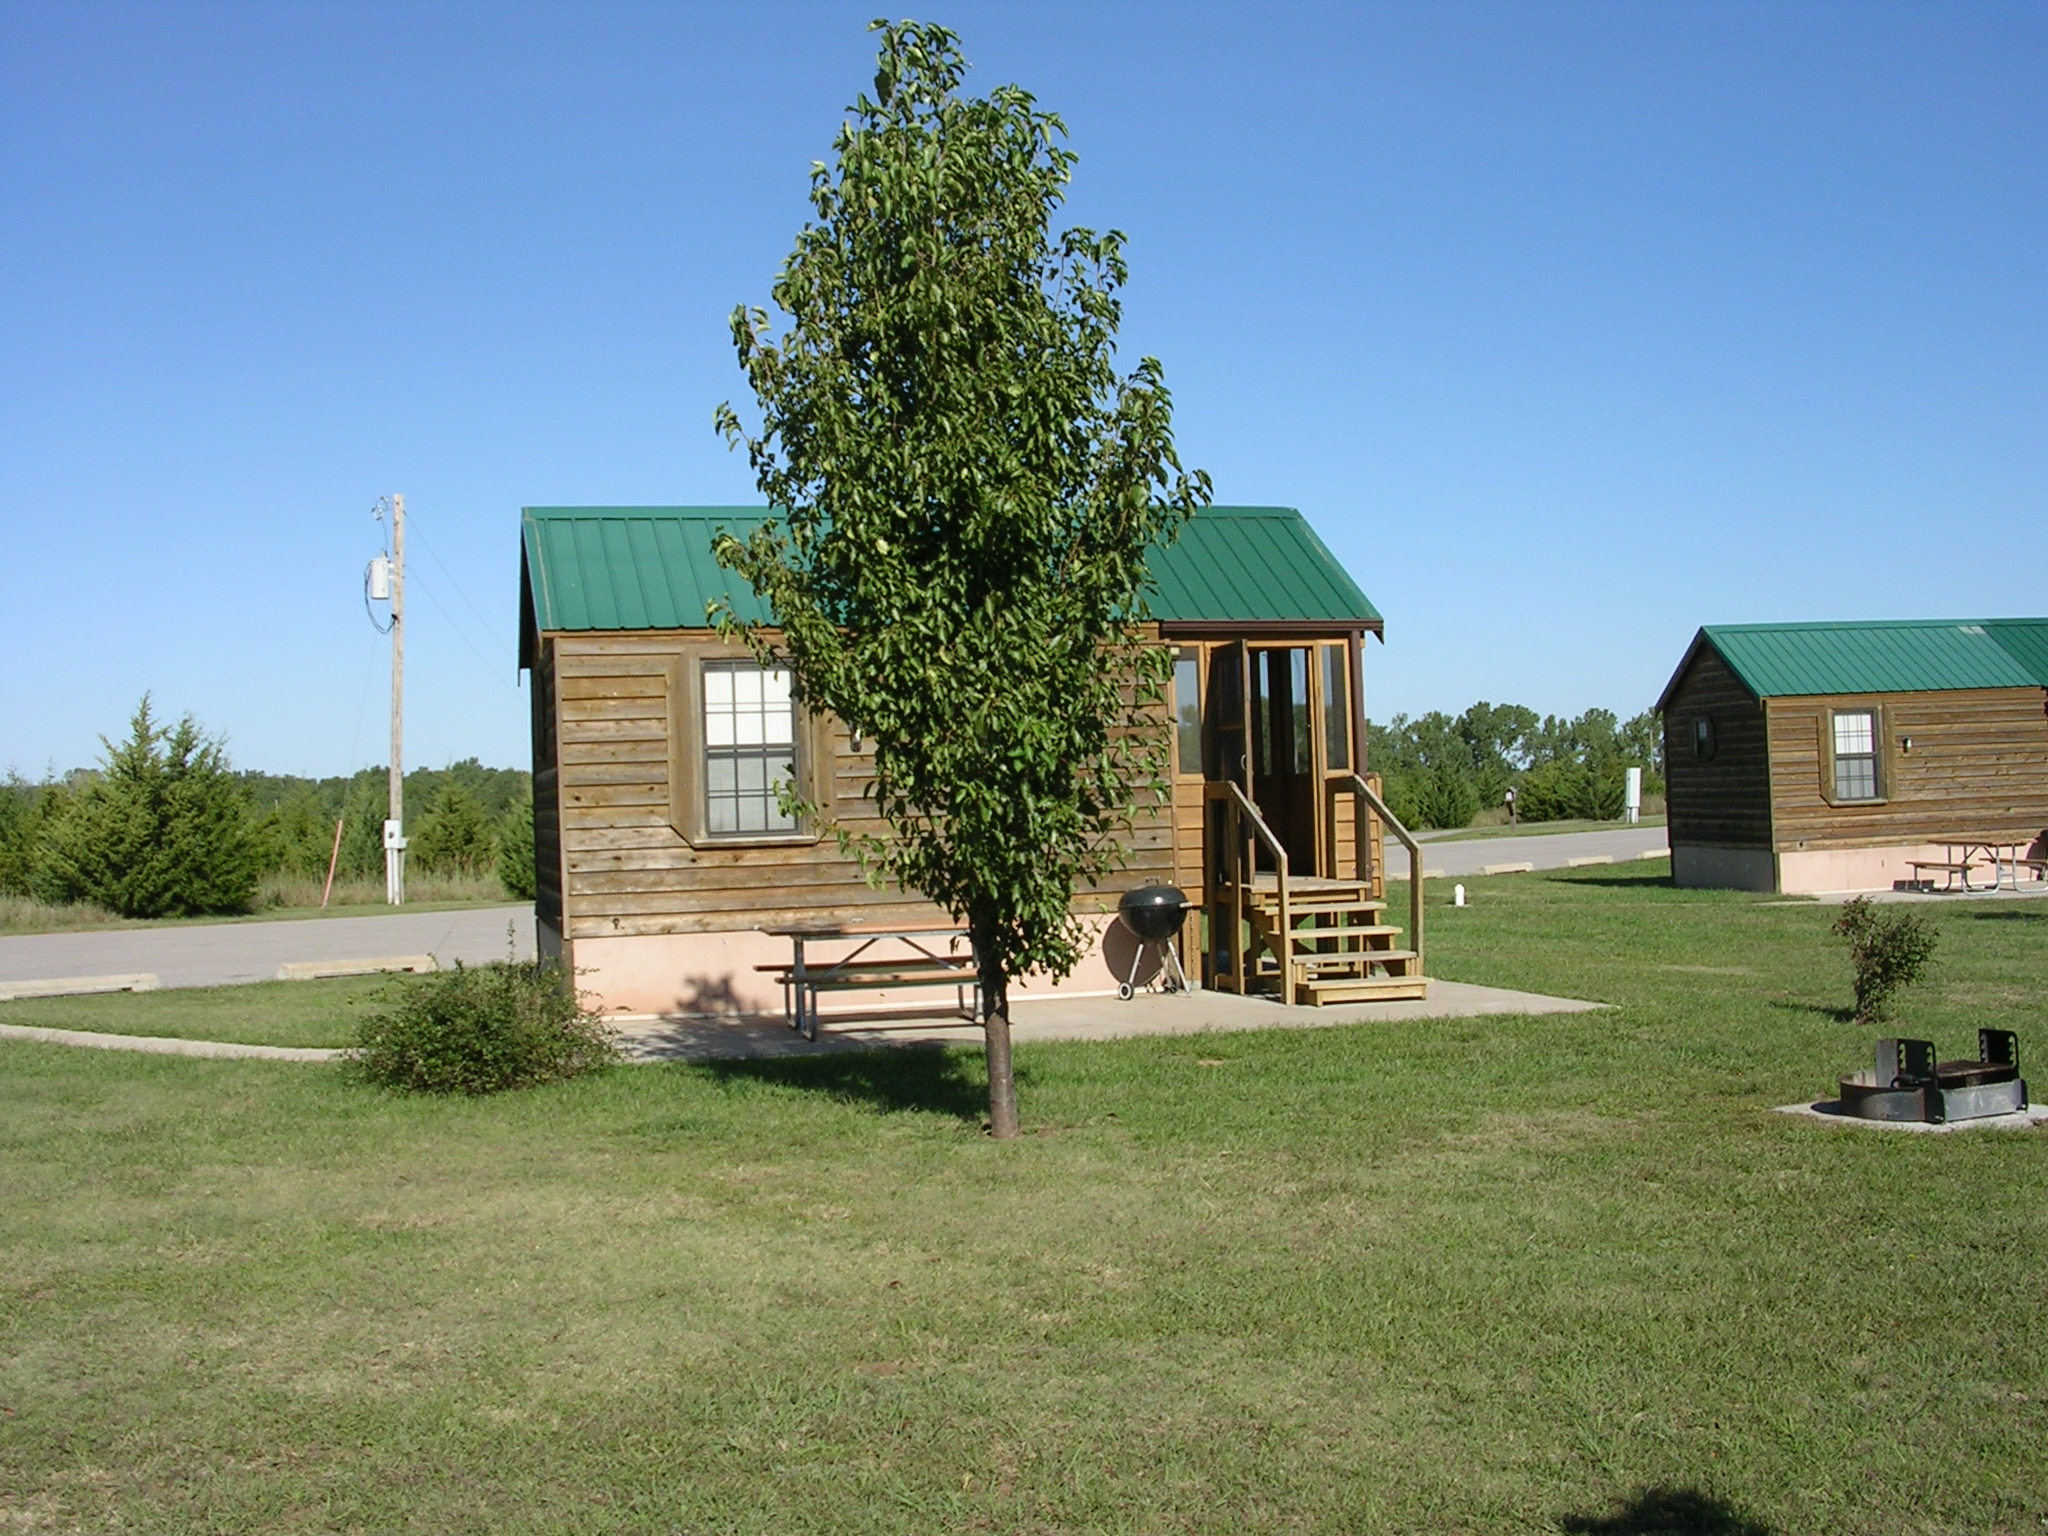 download fort display riley kansas cabin campgrounds winter a in details cabins photo article news rentals